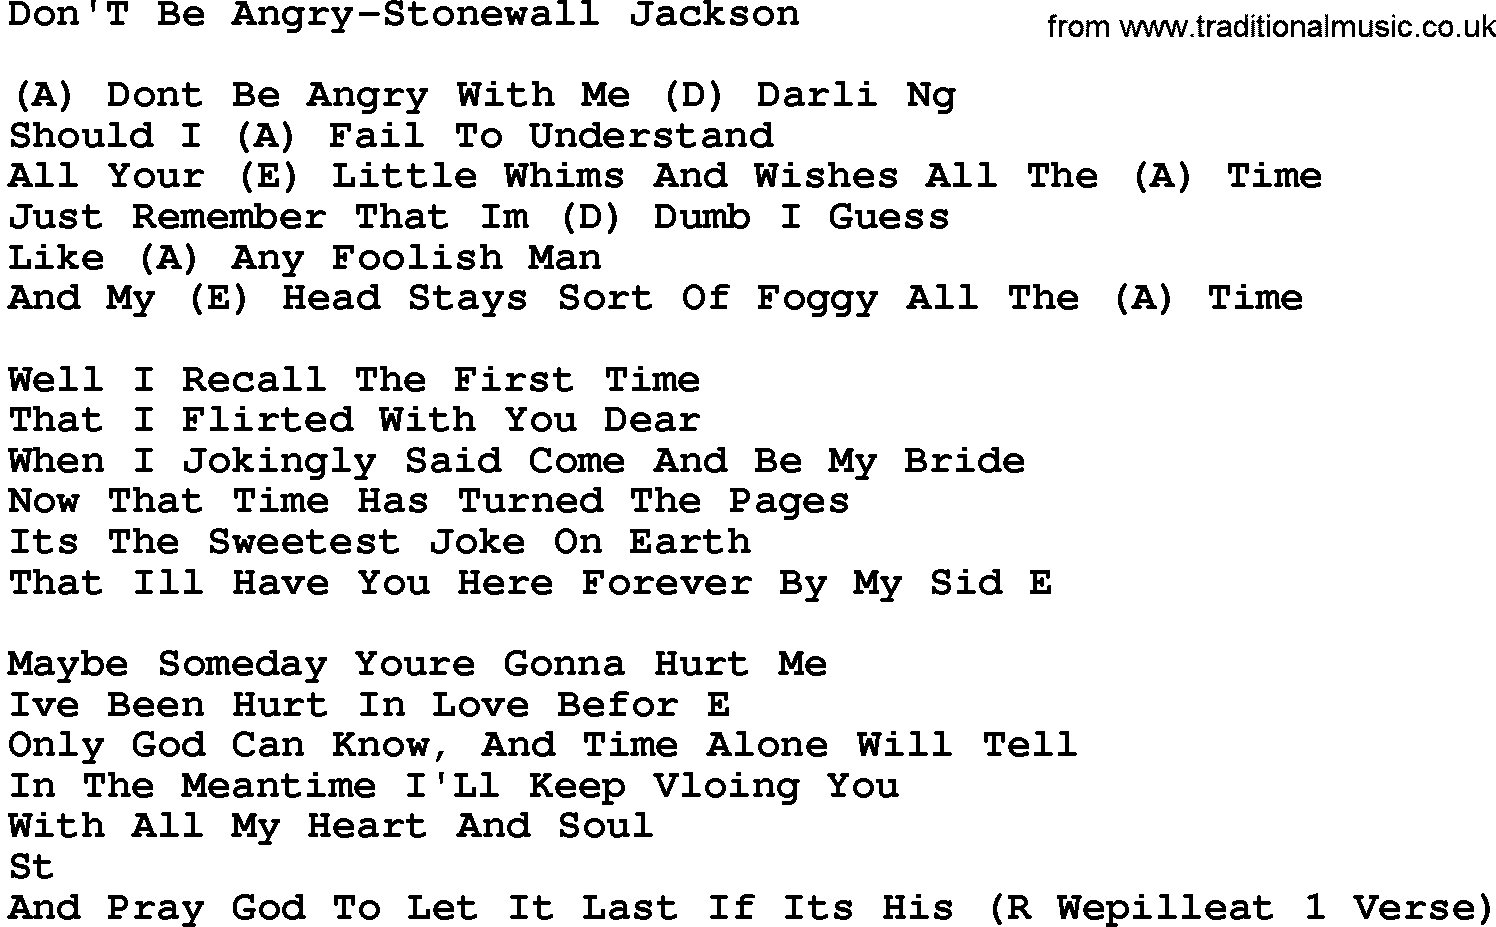 Country Musicdont Be Angry Stonewall Jackson Lyrics And Chords